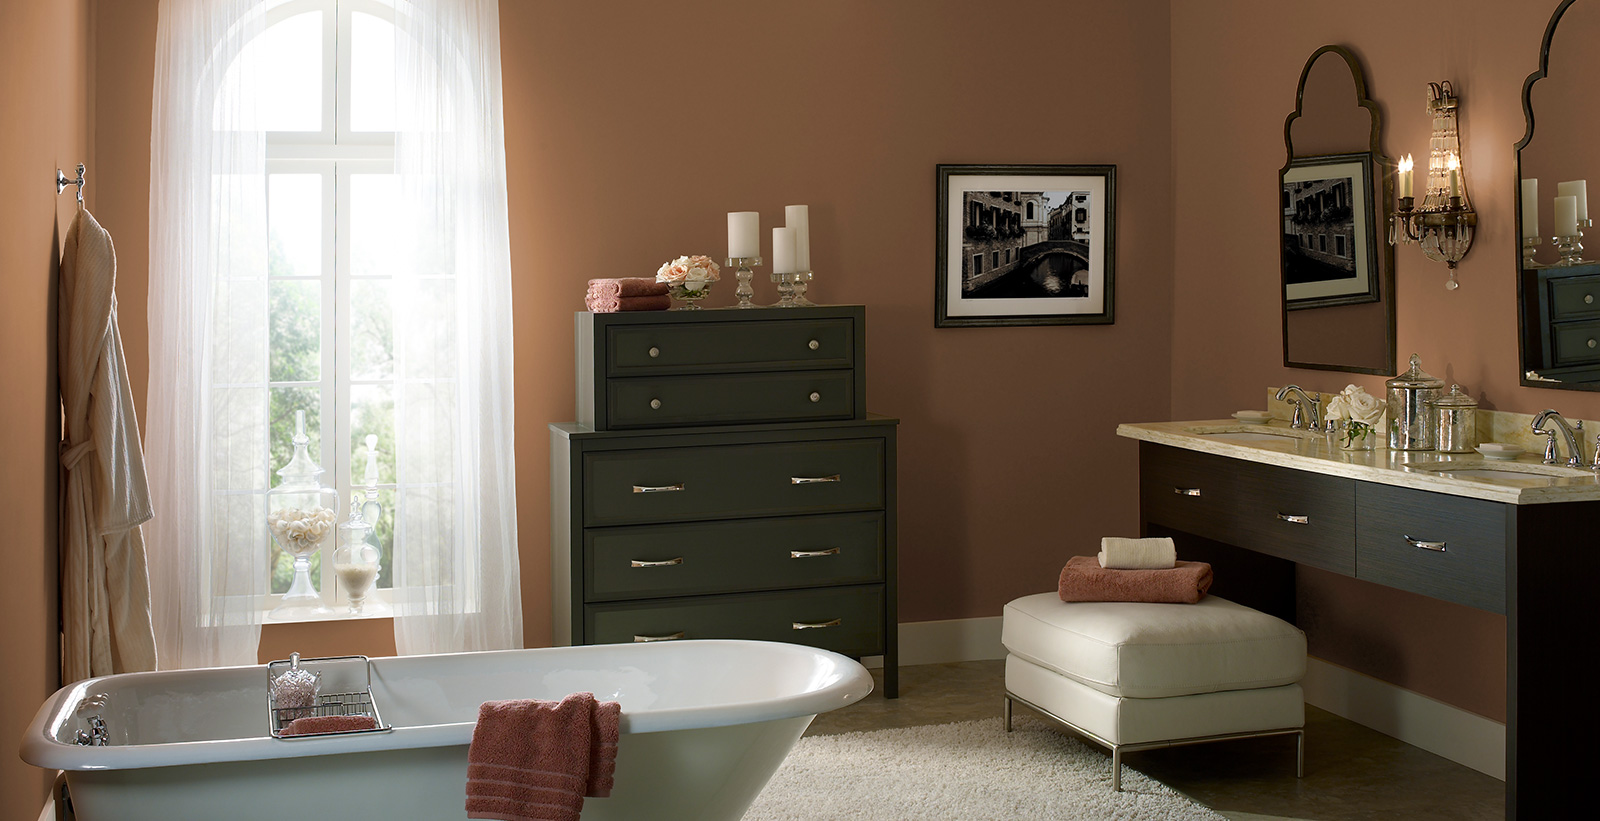 Modish themed bathroom with orange walls, white trim, and dark wooden dresser and sink.